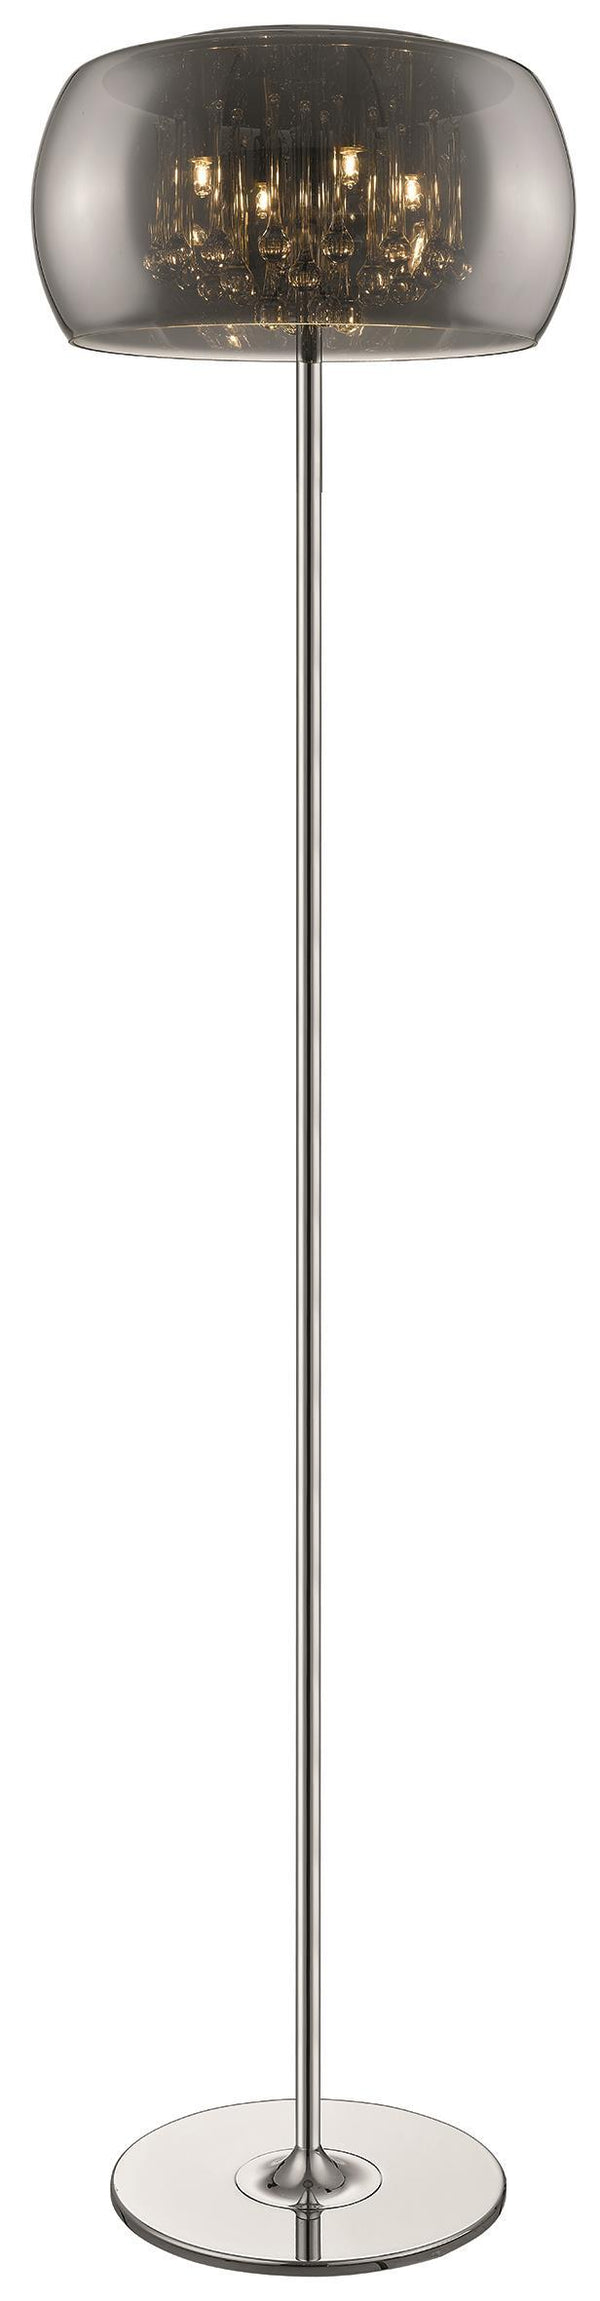 SND Lighting SND233 Landan Floor Lamp - SND Electrical Ltd